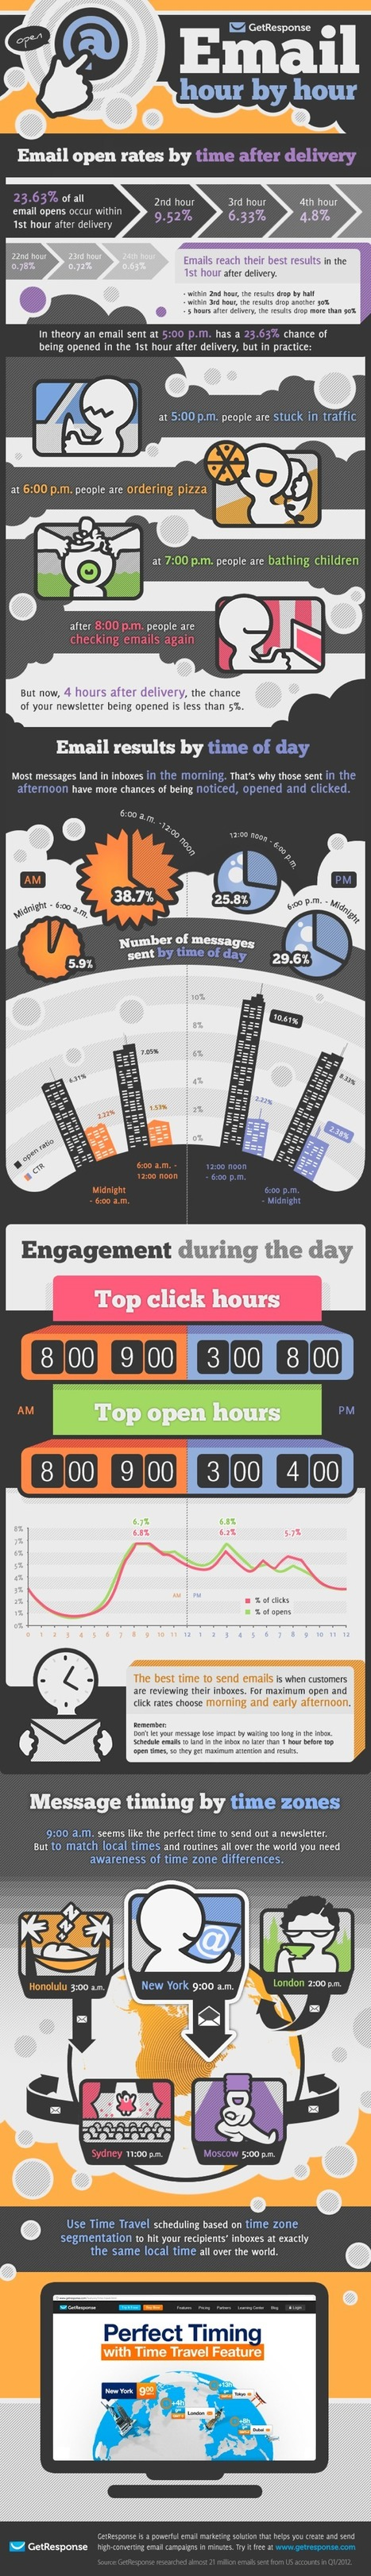 Emails Reach Their Best Results In the 1st Hour #Infographic | Social Media (network, technology, blog, community, virtual reality, etc...) | Scoop.it